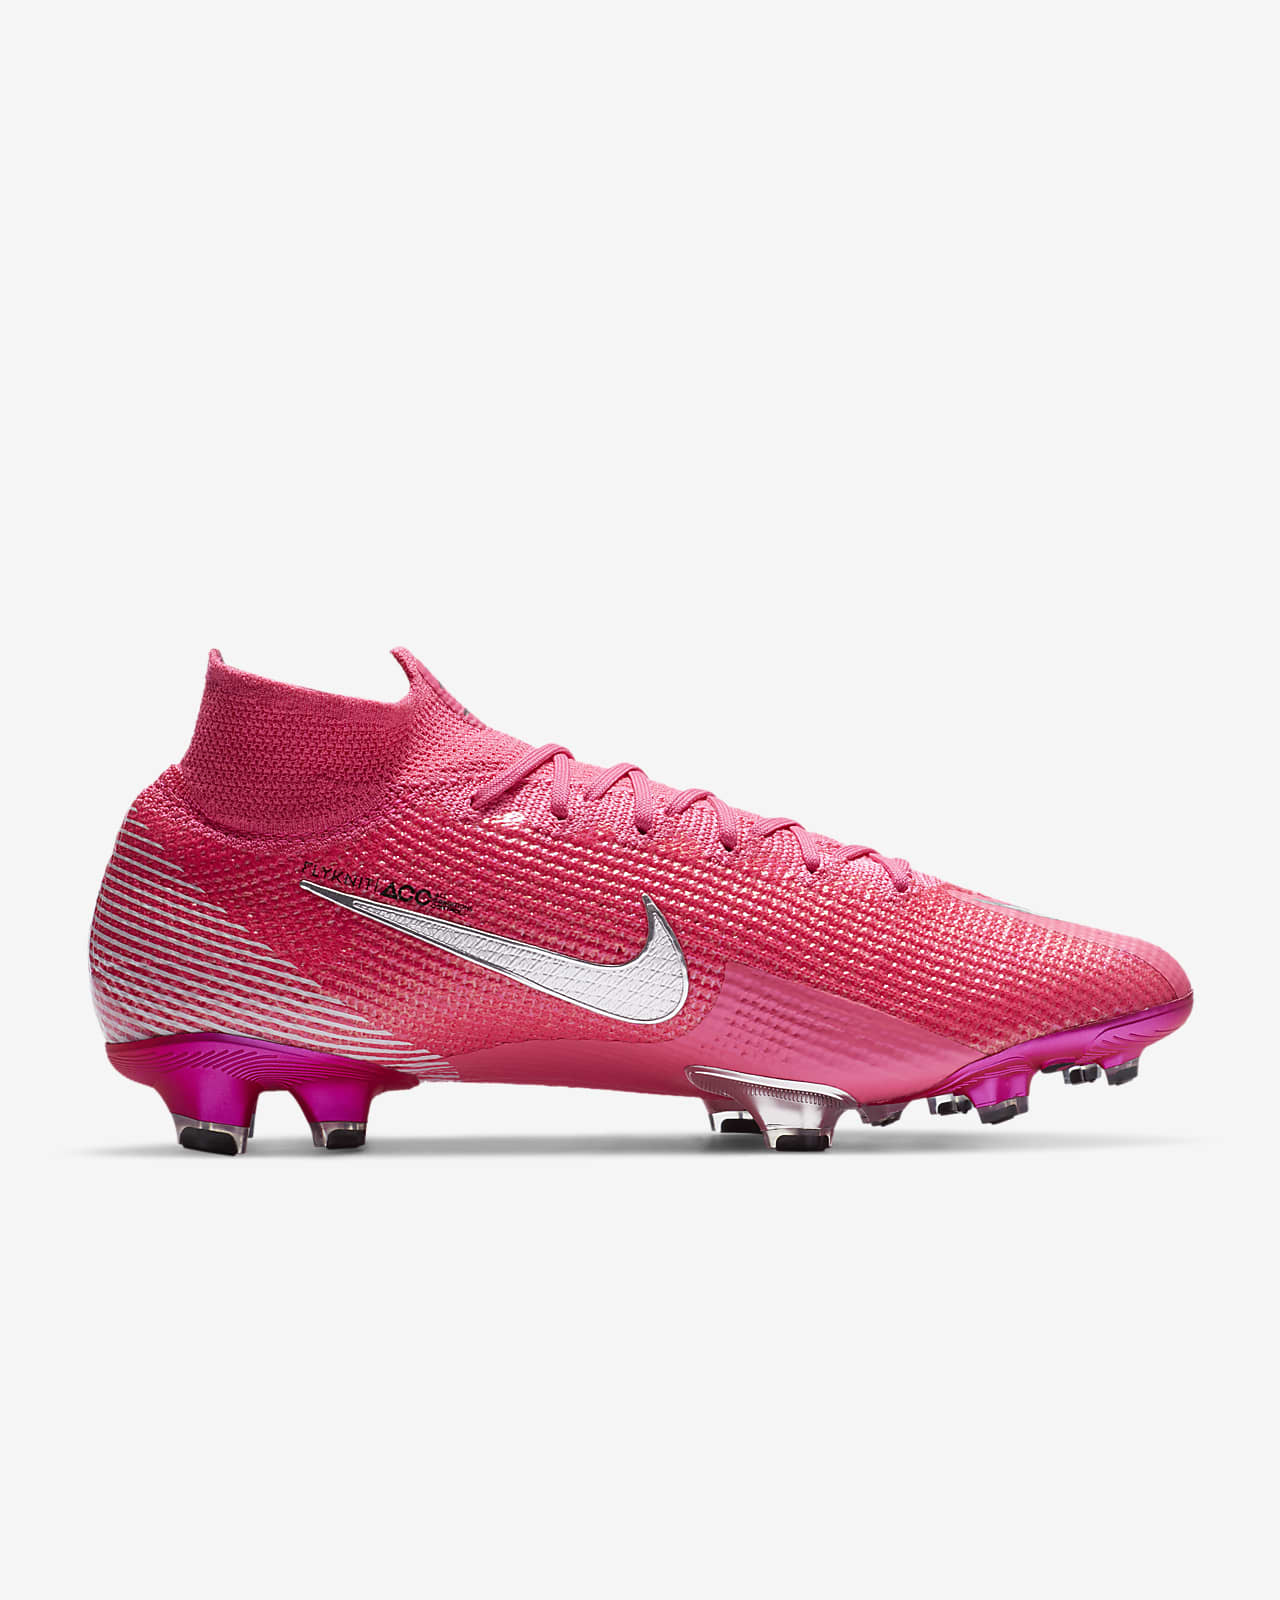 Nike Mercurial Superfly 7 Elite Mbappé Rosa FG Firm-Ground Soccer Cleat